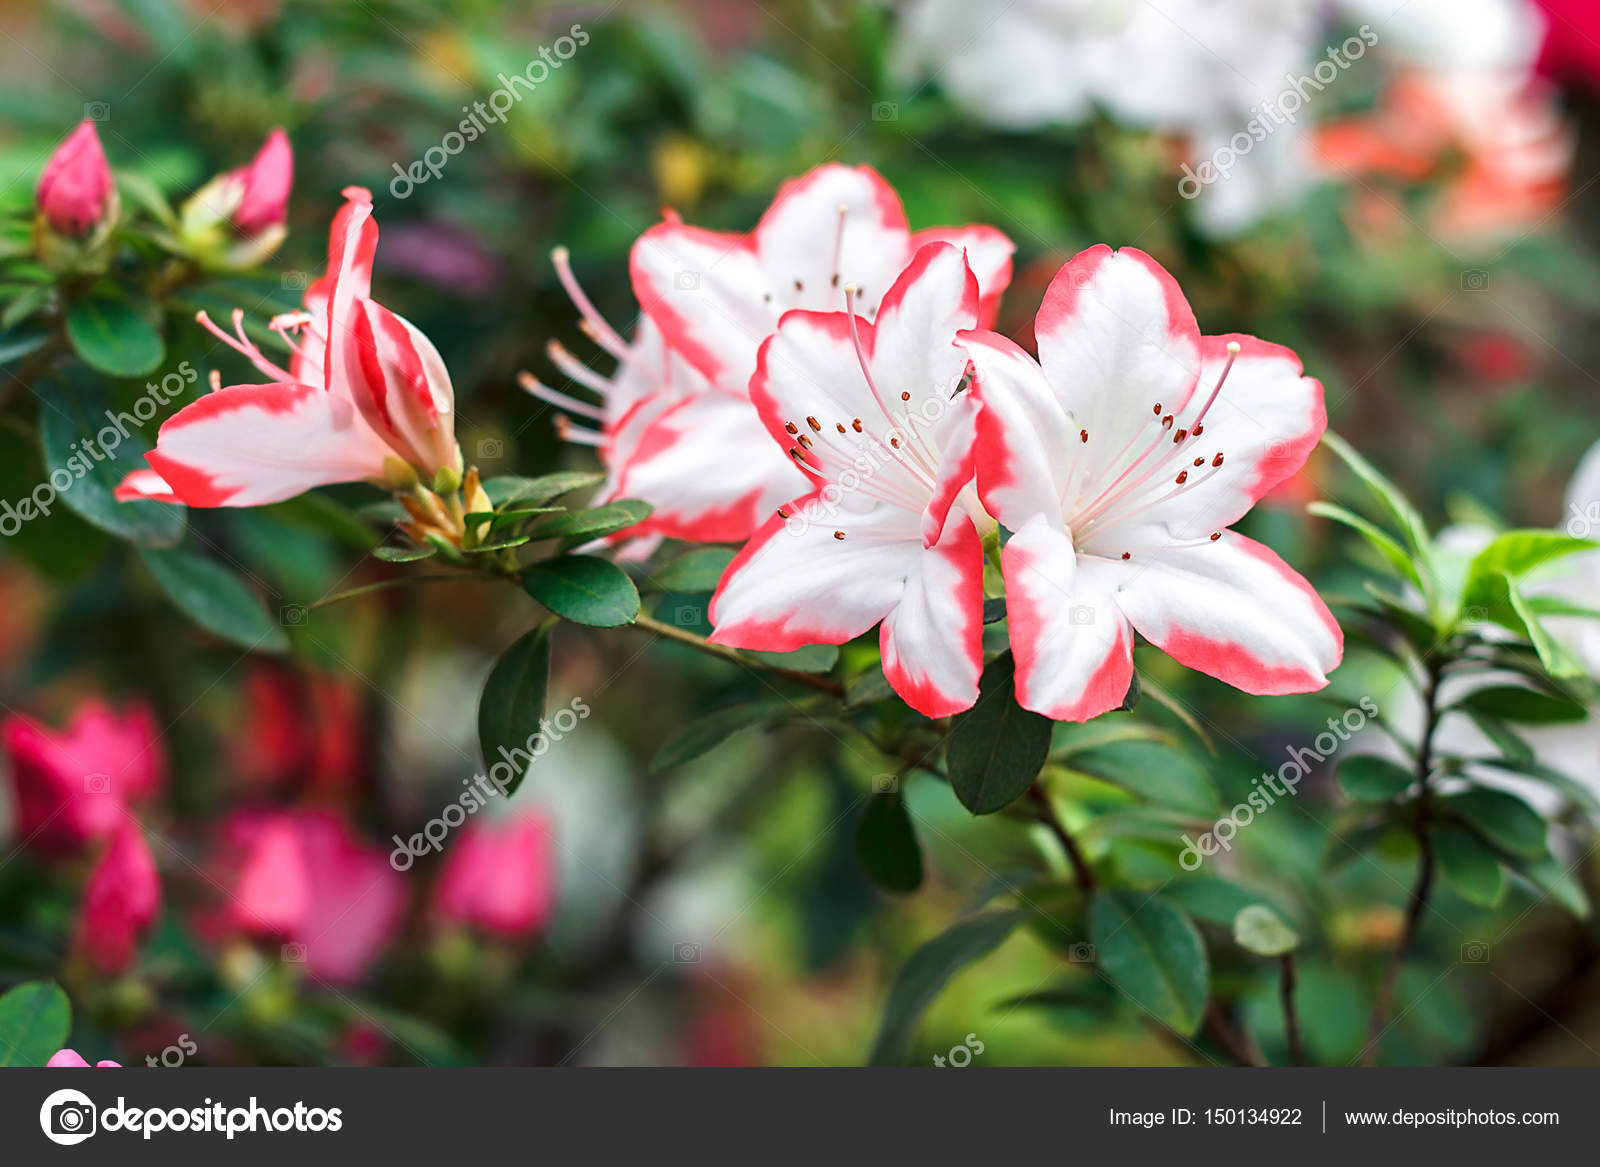 https://st3.depositphotos.com/7043674/15013/i/1600/depositphotos_150134922-stock-photo-beautiful-pink-rhododendron-tree-blossoms.jpg